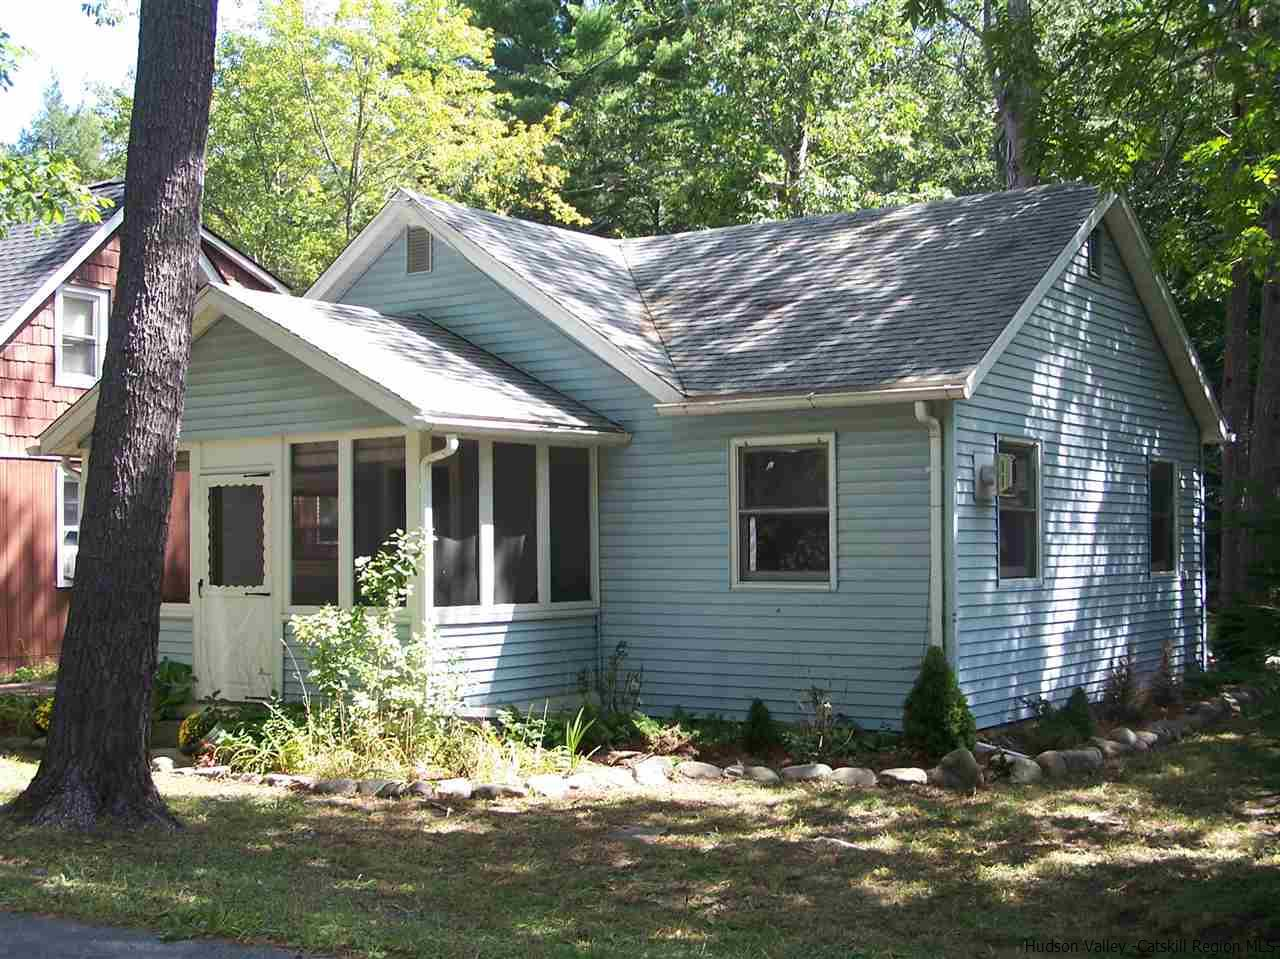 Single Family Home for Sale at 424 BAND CAMP ROAD 424 BAND CAMP ROAD Saugerties, New York 12477 United States